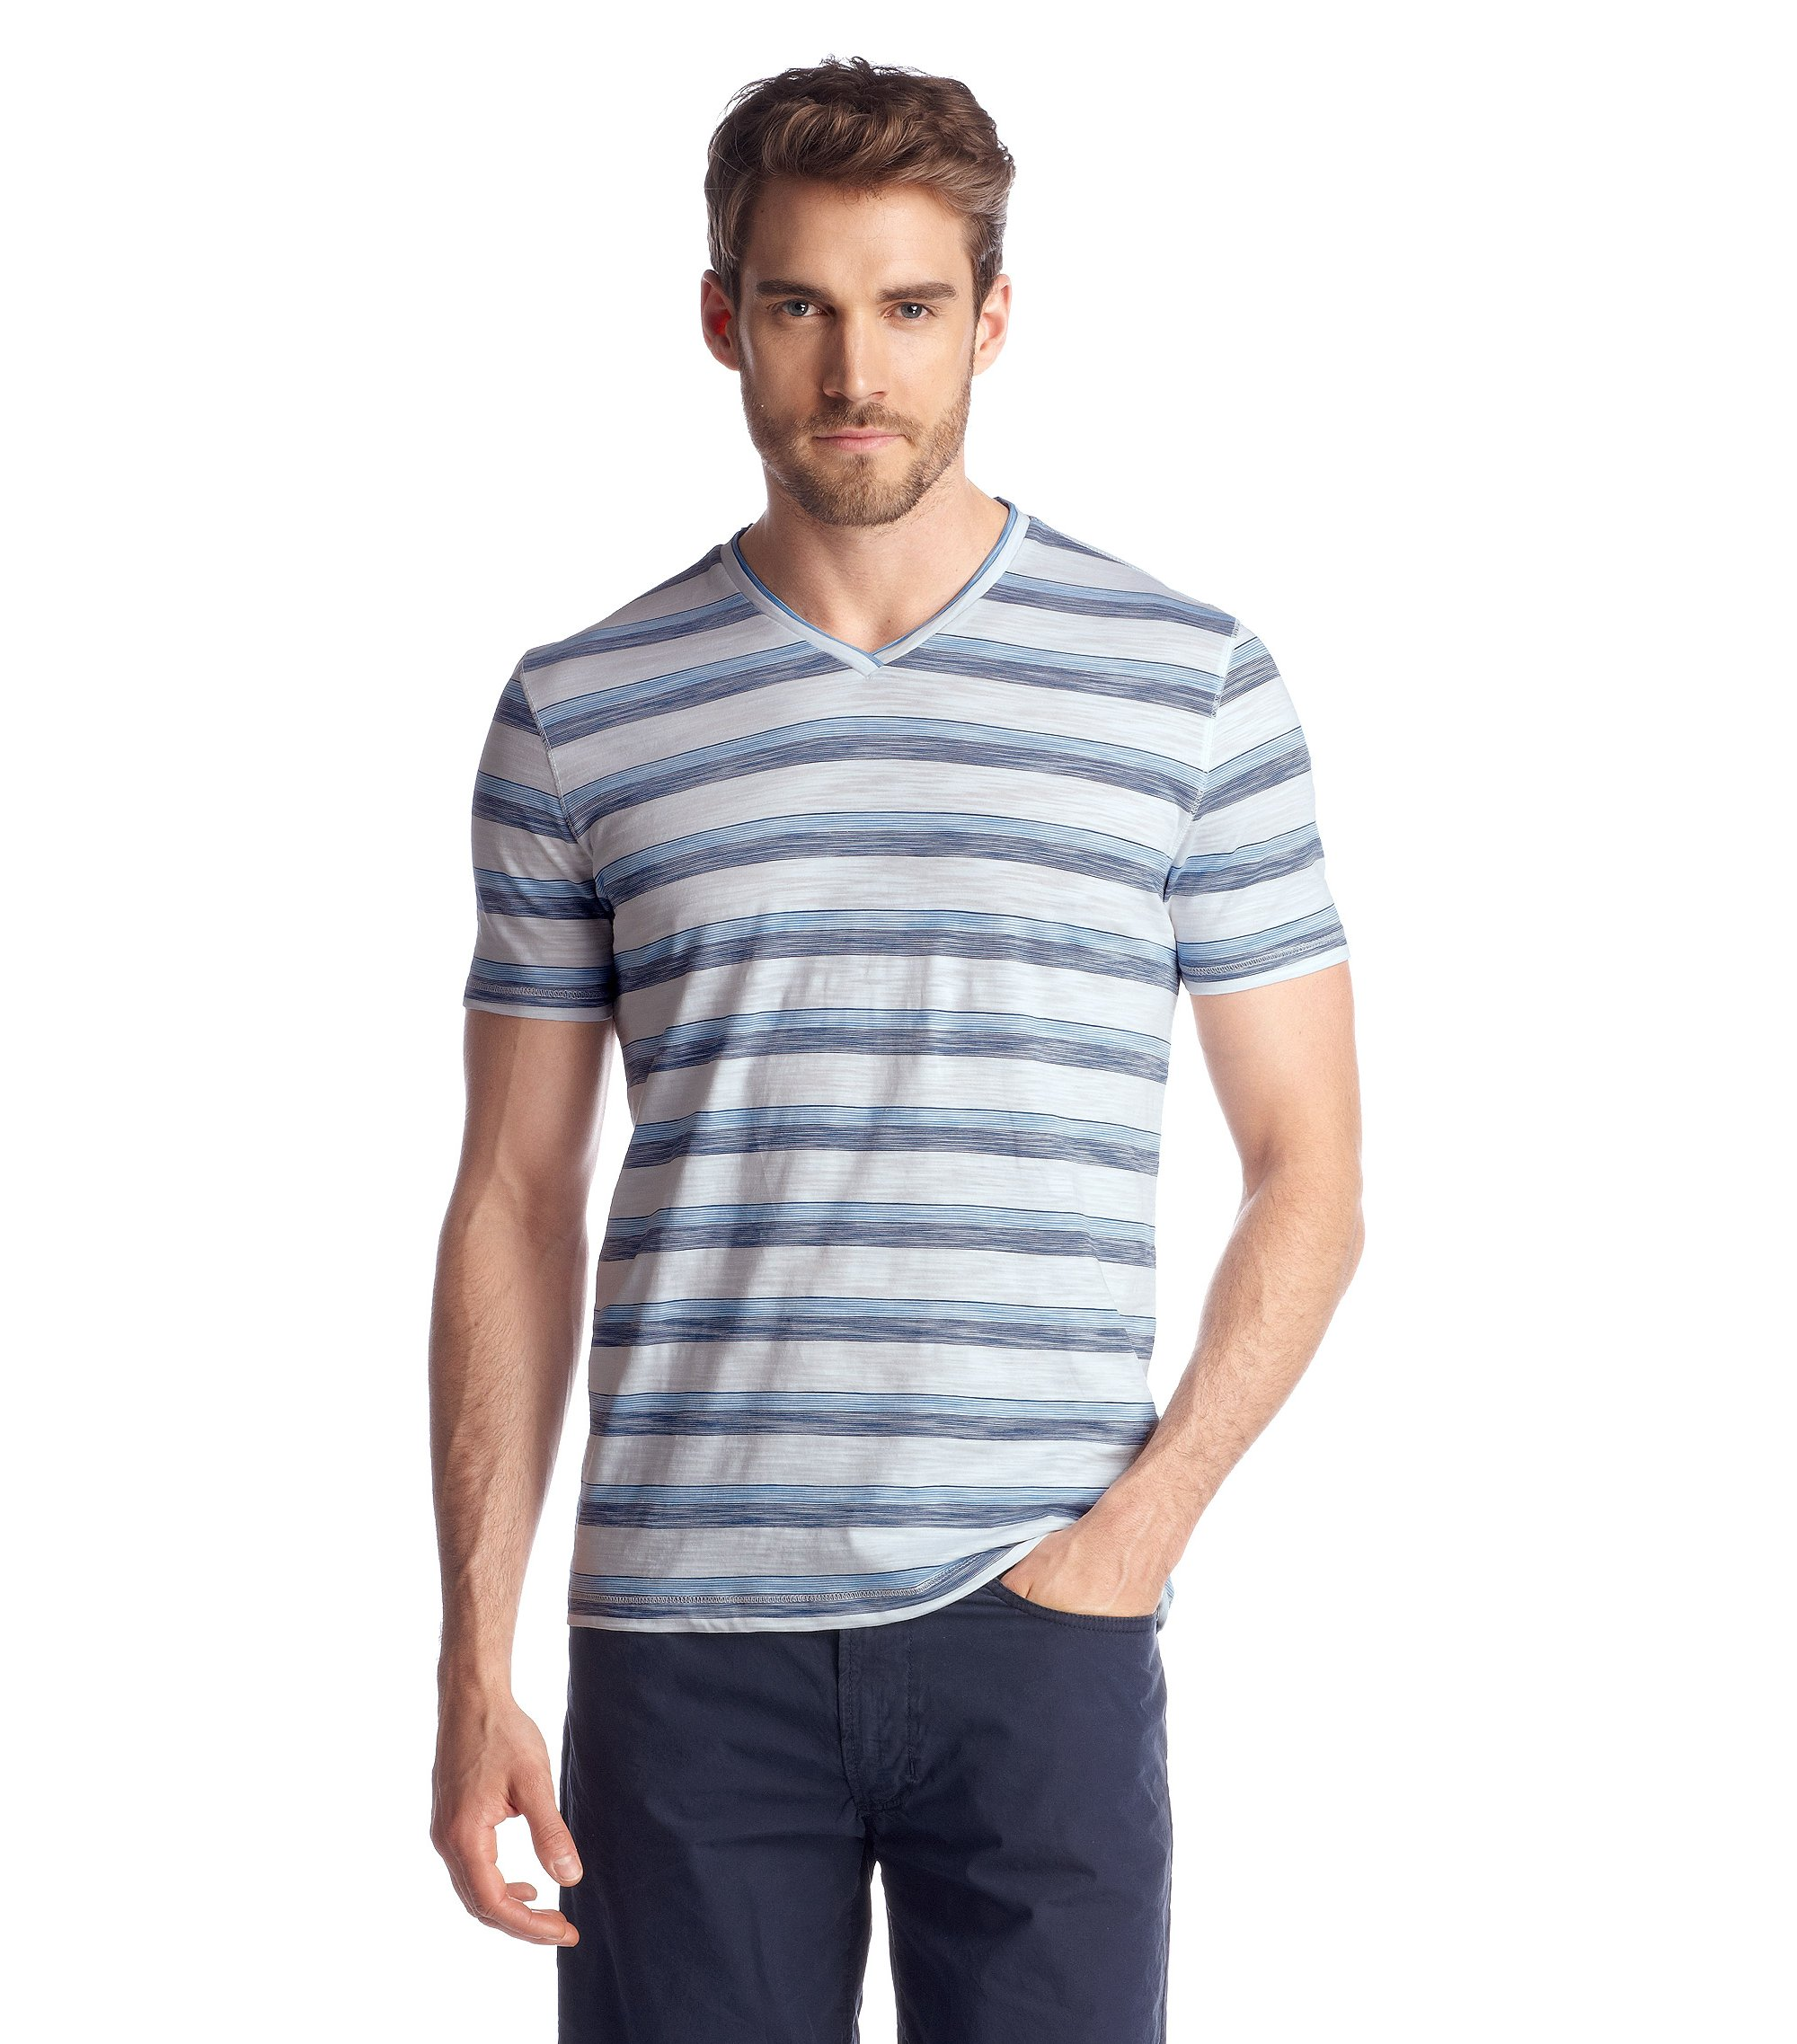 V-neck T-shirt 'Eraldo 54', Light Blue